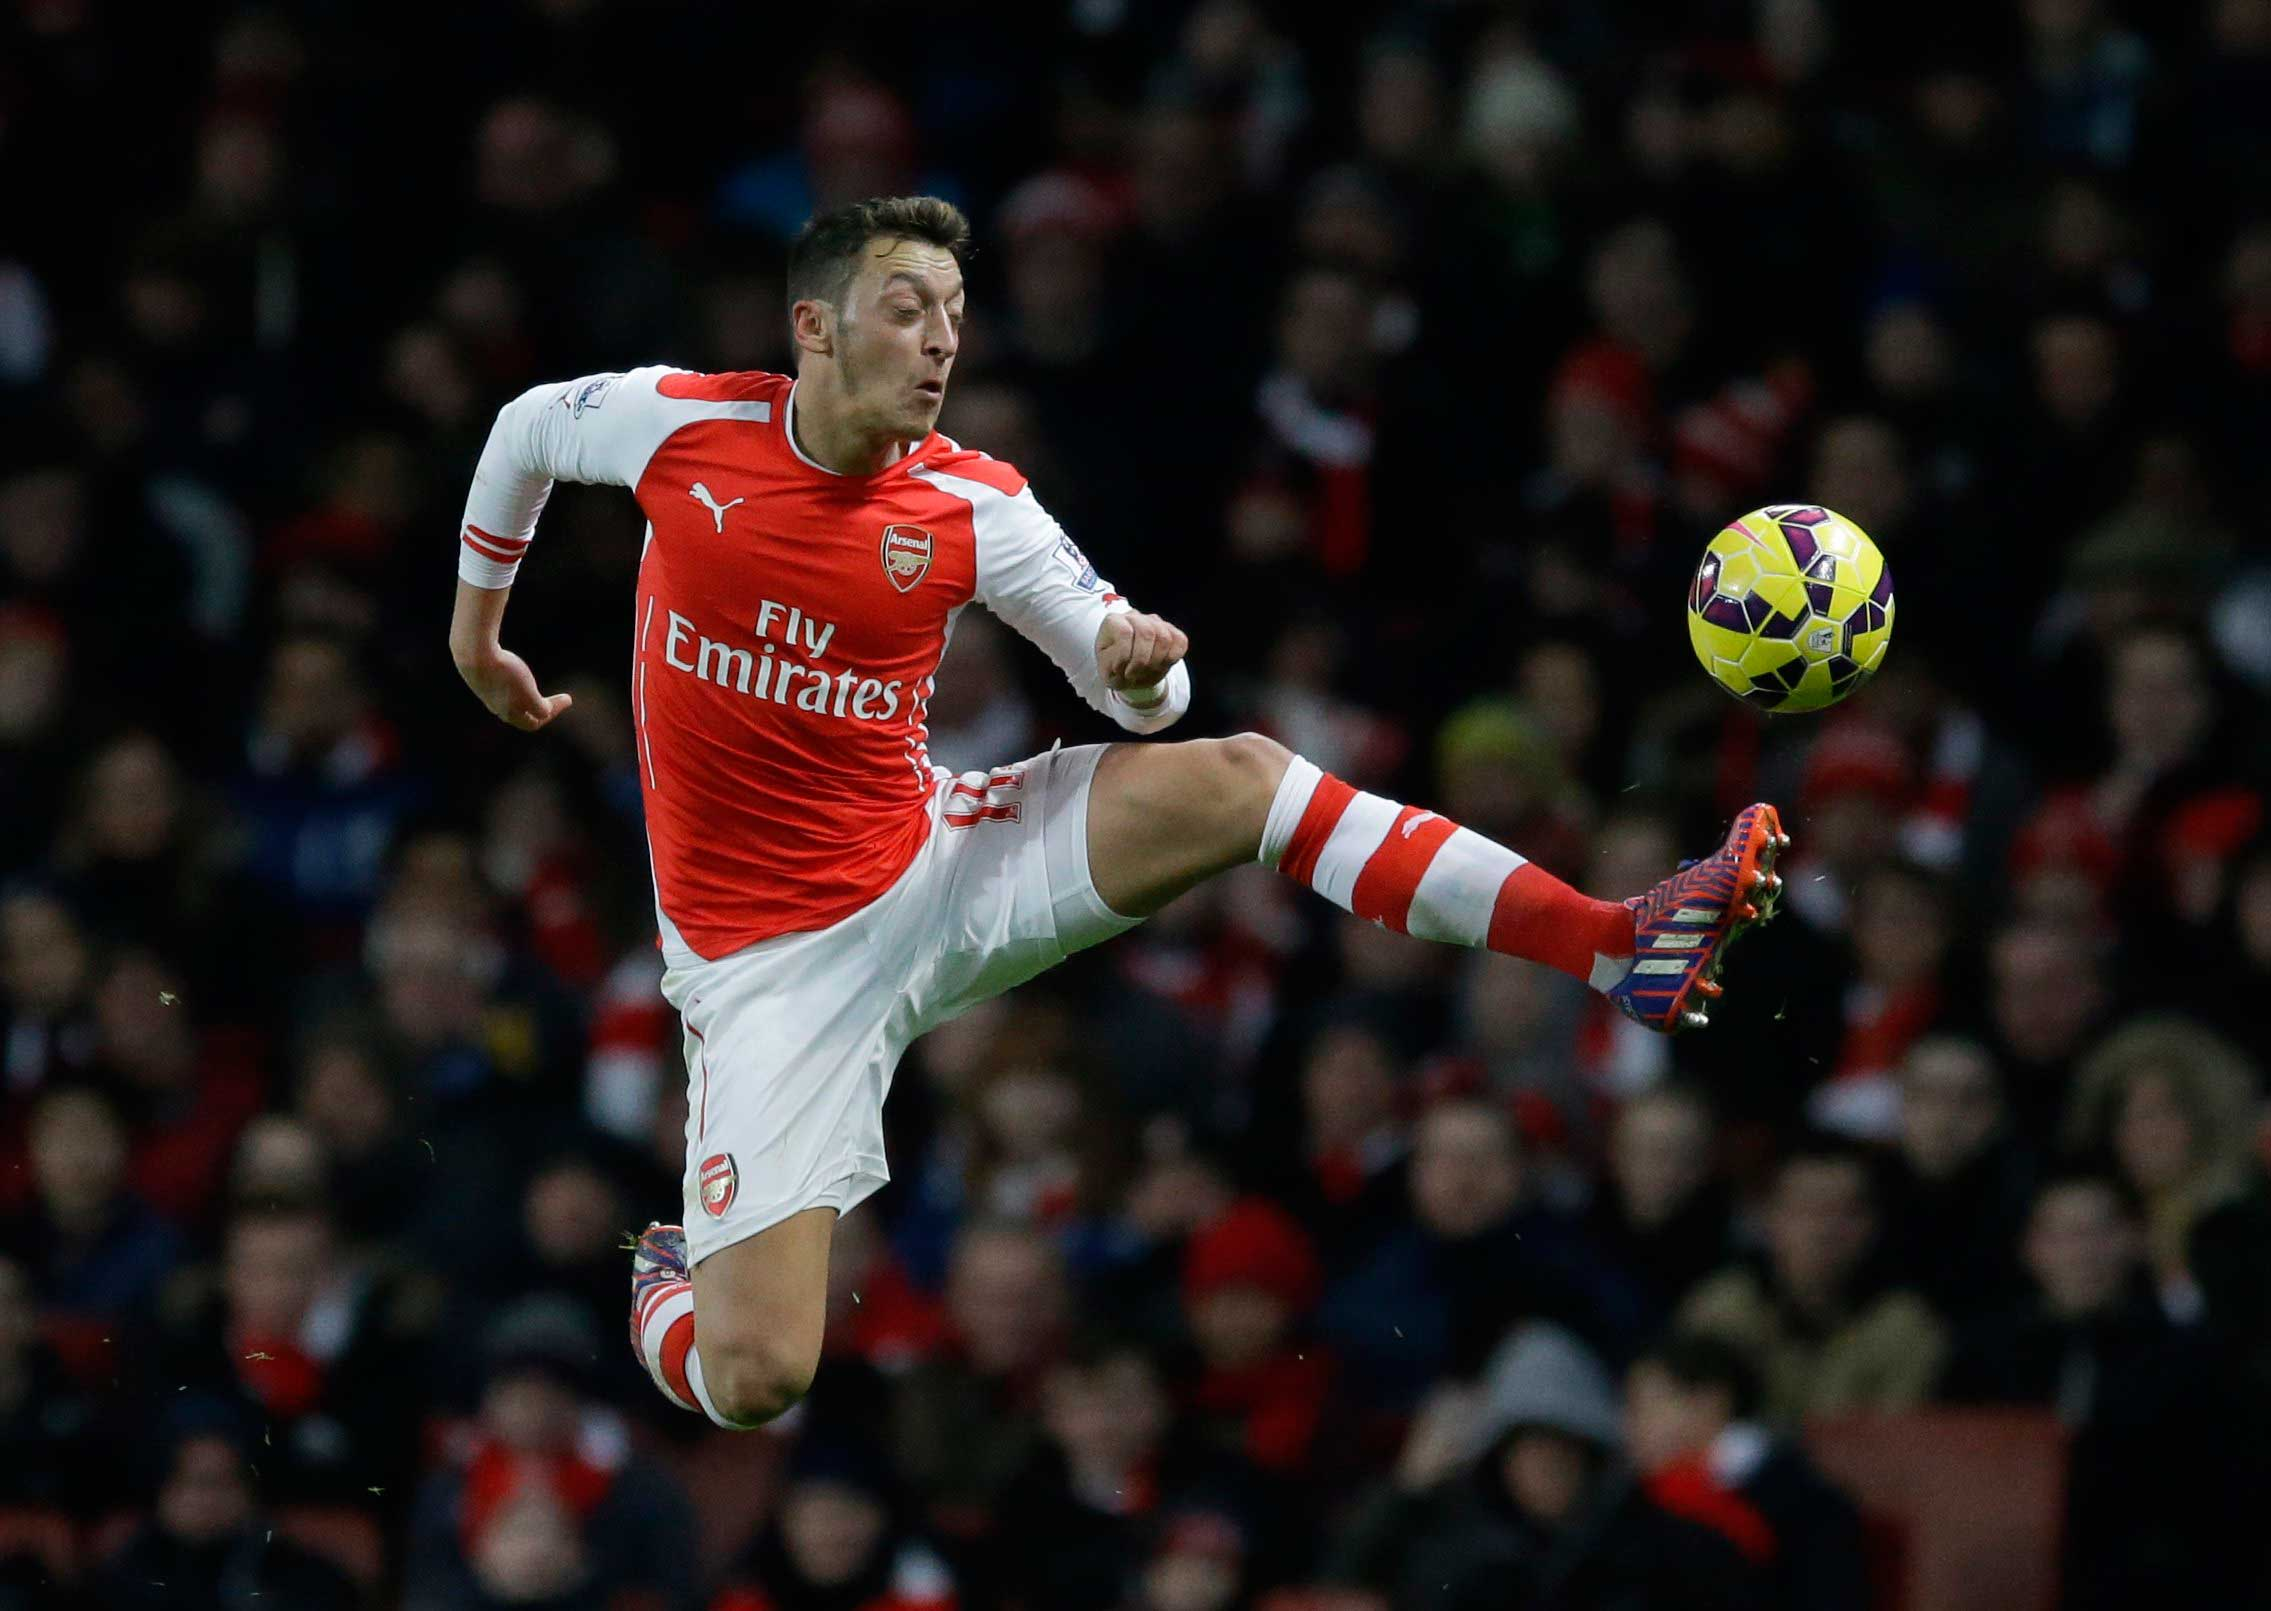 Gunner stay: Arsenal are keen to tie Ozil down to new deal